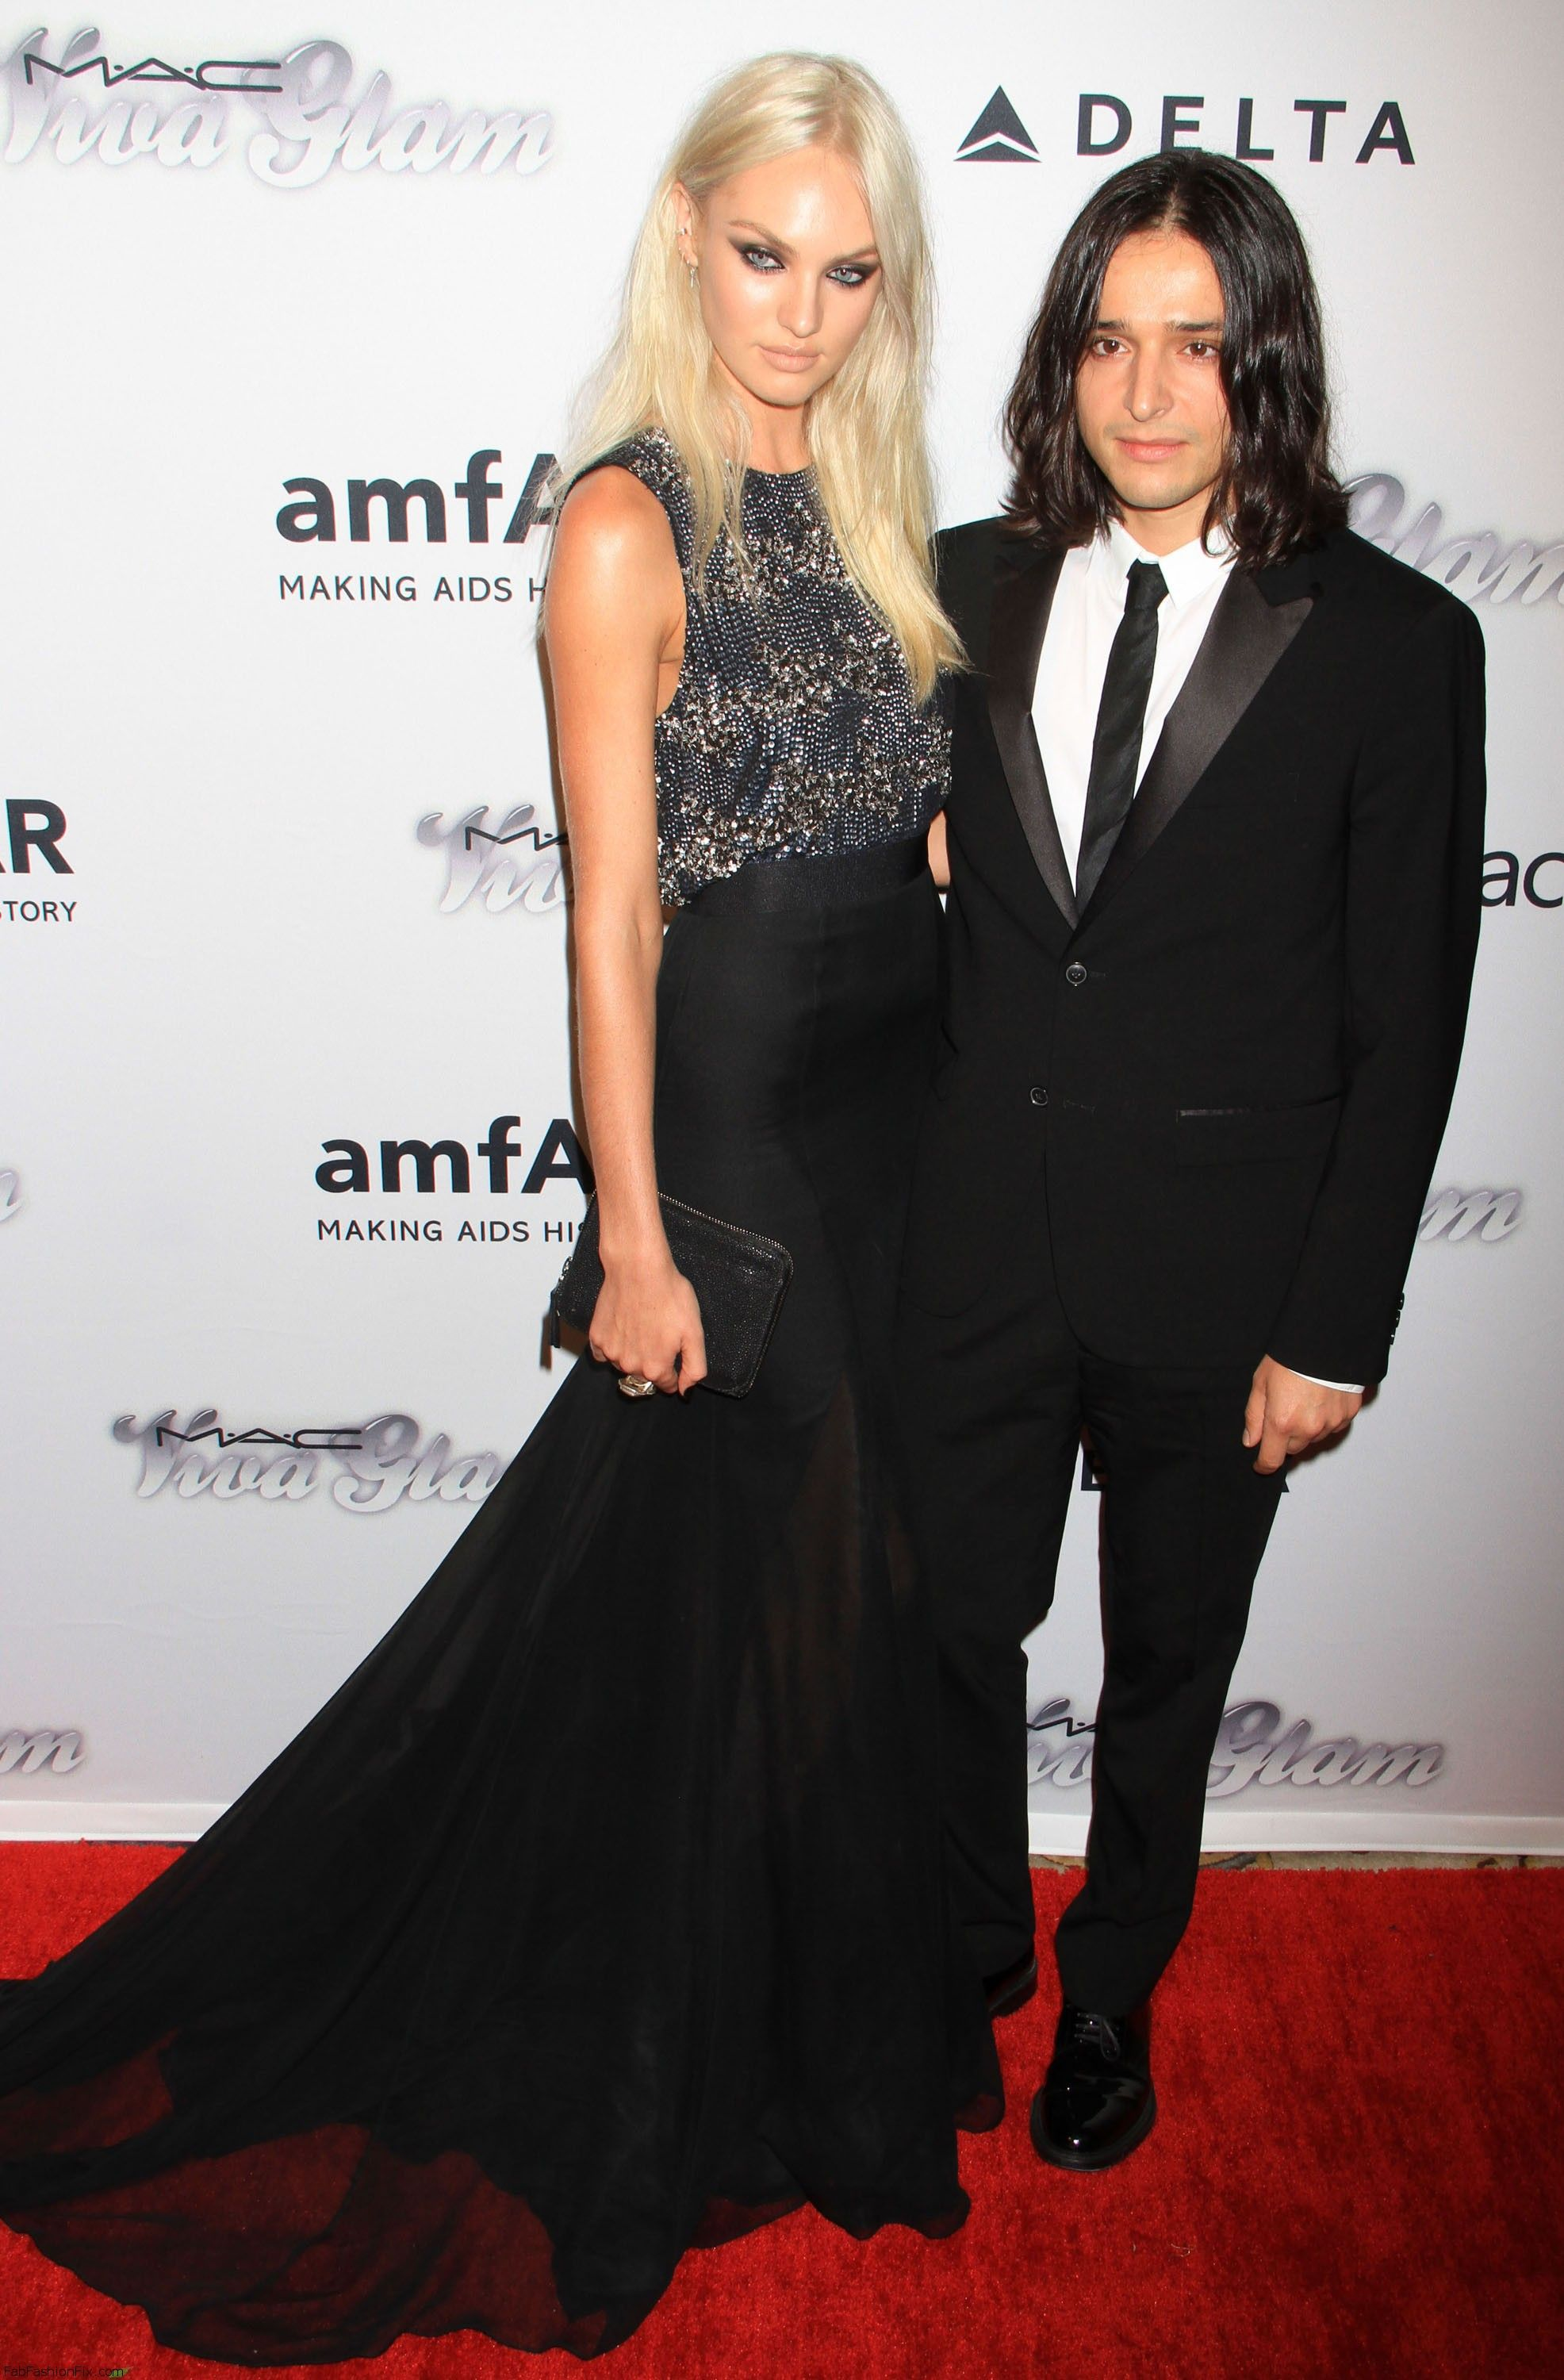 The 4th Annual amfAR Inspiration Gala New York